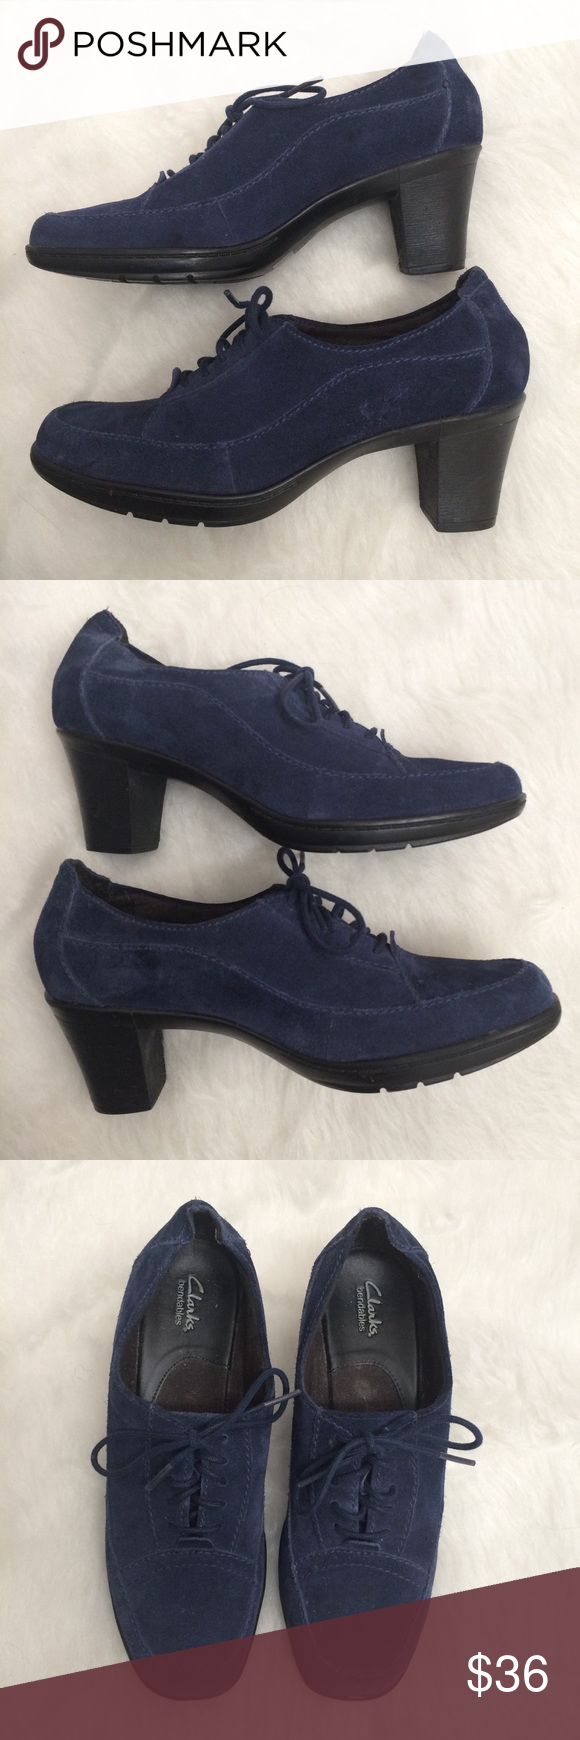 beeab84bb8b30 Clarks Navy Blue Suede Lace Up Oxford Style Heels Clarks Bendables ...